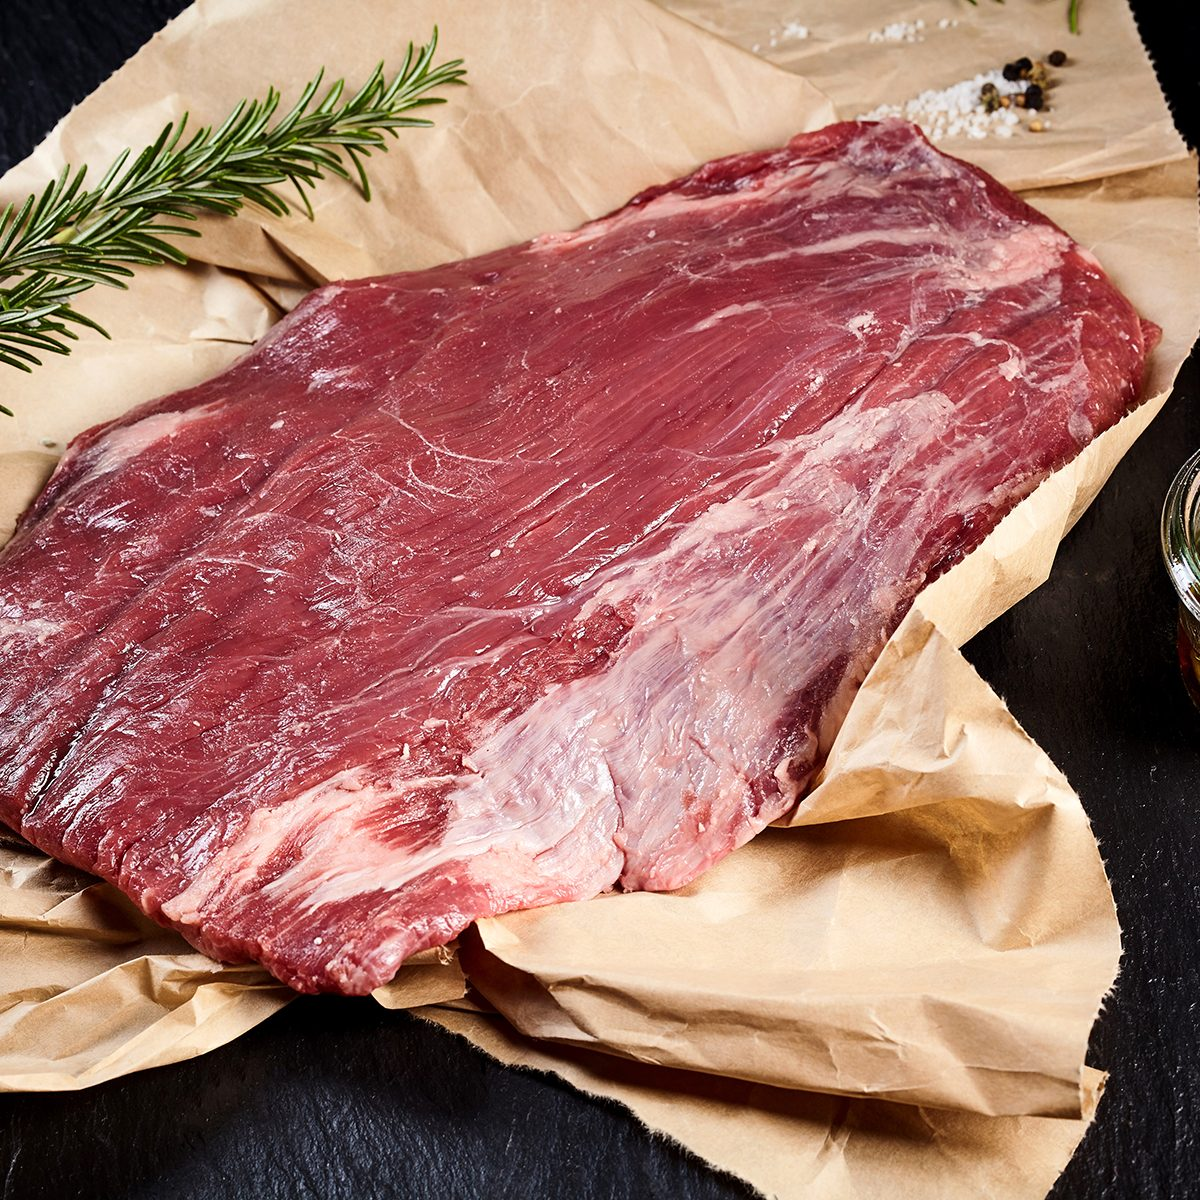 Portion of lean raw flank steak for roasting or grilling on crumpled brown paper in a rustic kitchen with a sprig of fresh rosemary and olive oil marinade